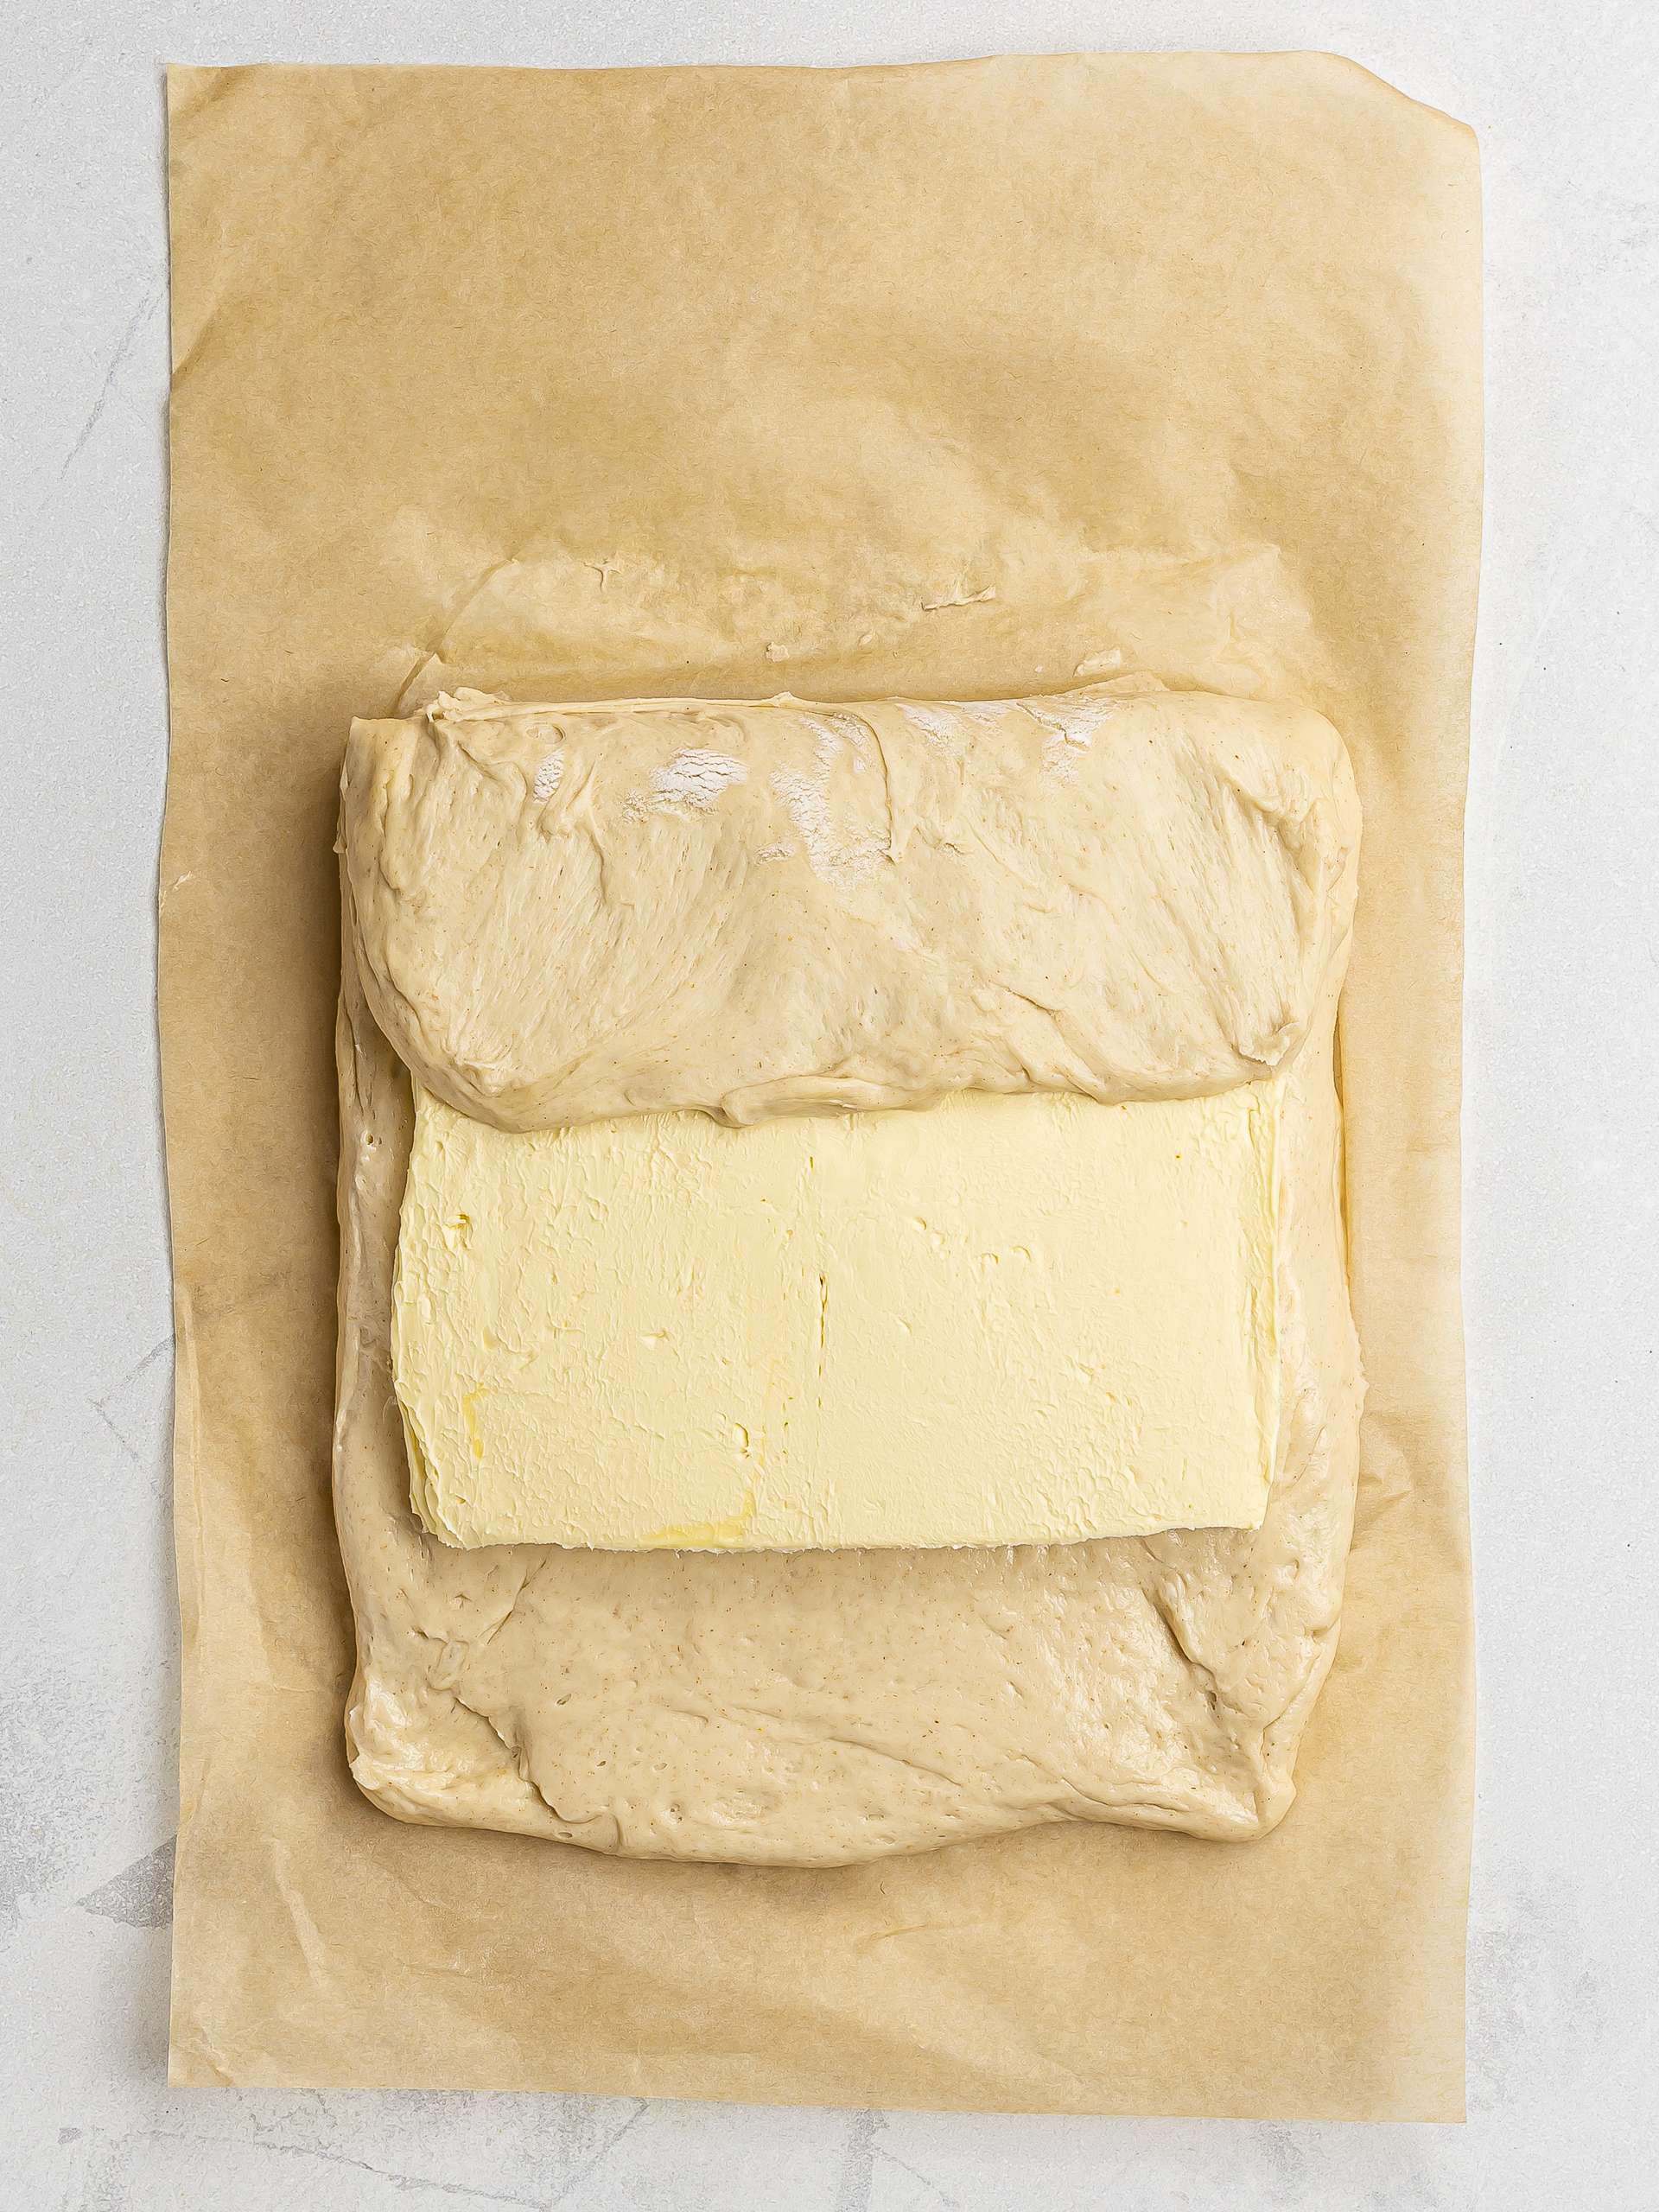 vegan pastry dough with butter slab in the centre